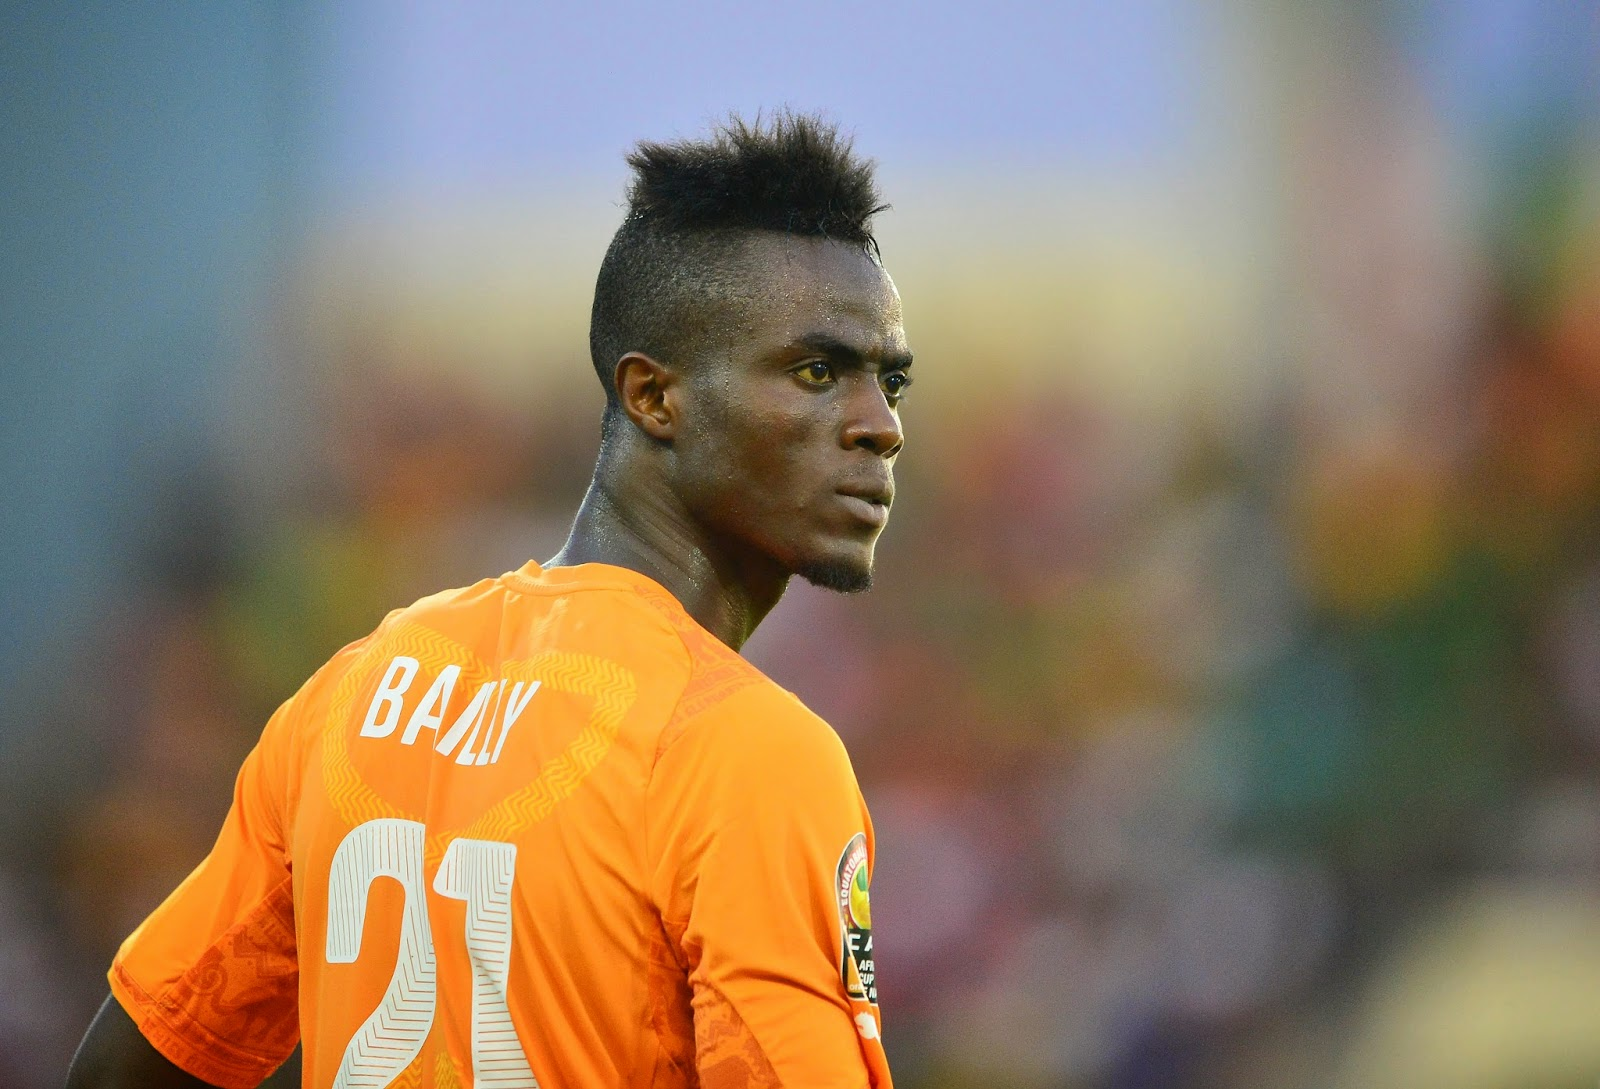 Ivory Coast refuse Mourinho's request to delay Bailly departure